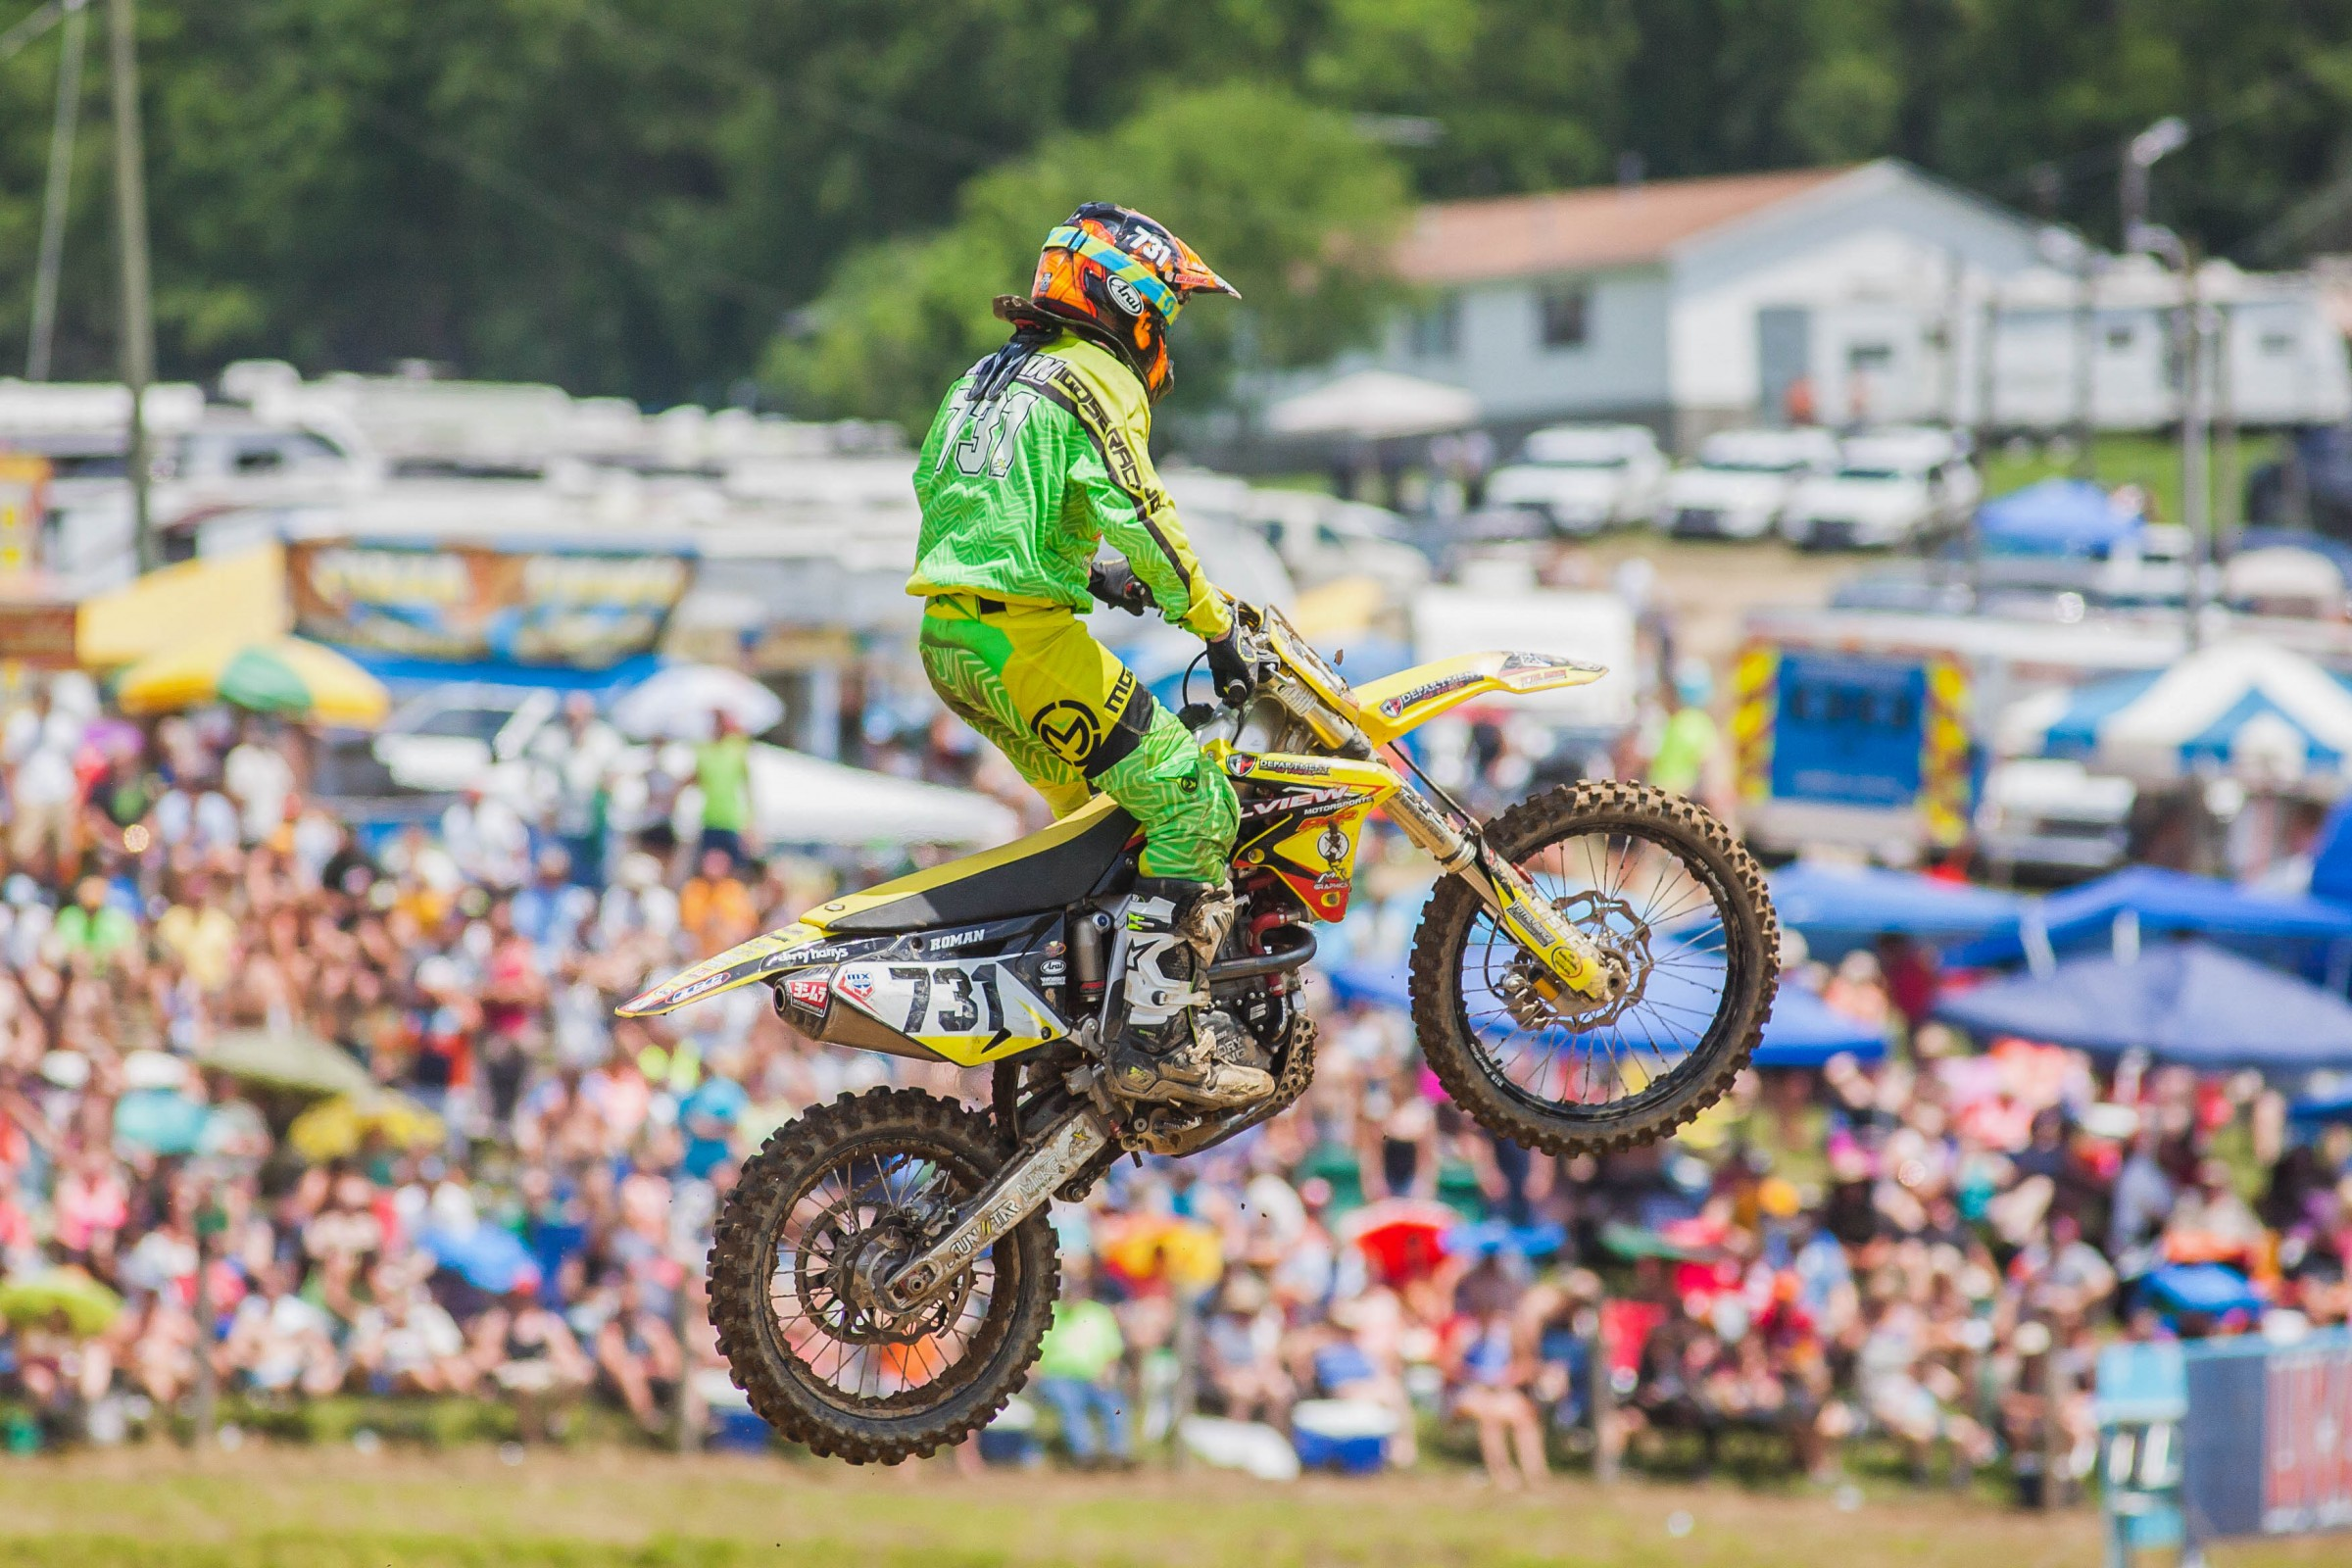 Roman went 29-29 in the 450 Class at High Point.